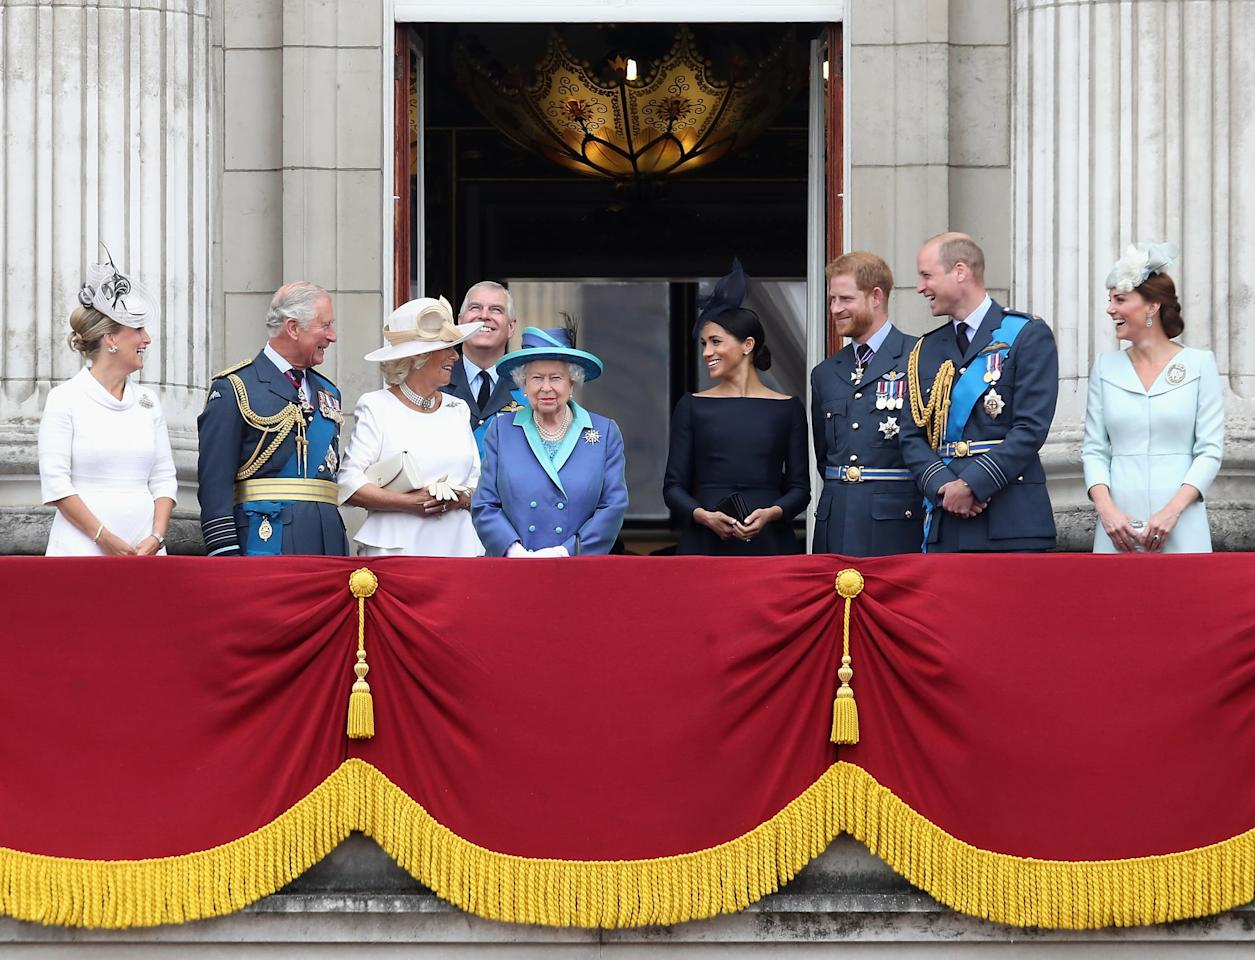 <p>Charles and Meghan exchanged a smiley glance on the balcony of Buckingham Palace during the Royal Air Force celebration in July 2018.</p>